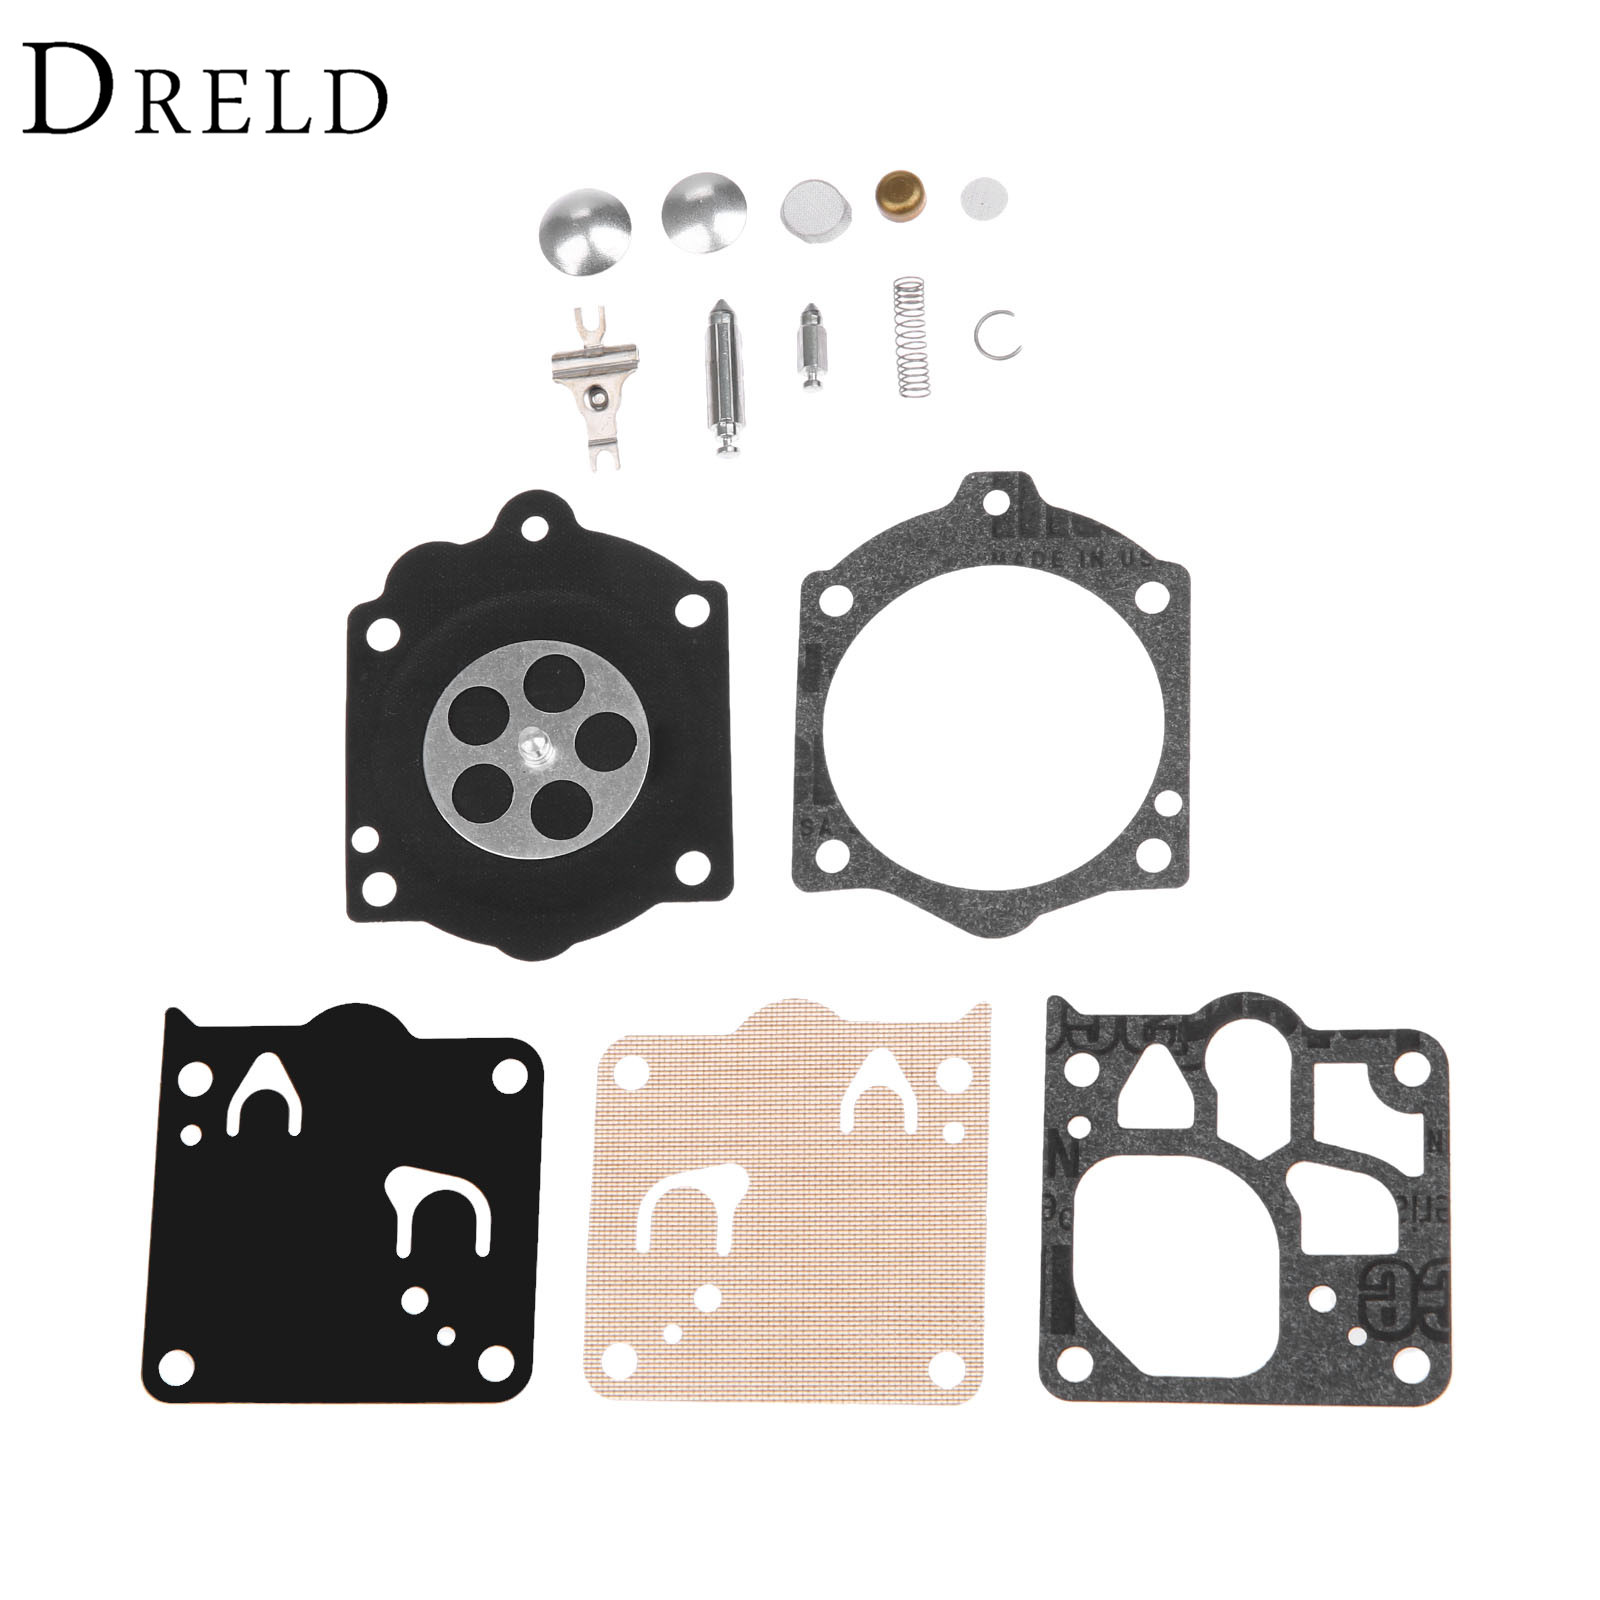 DRELD Carburetor Carb Rebuild Kit Gasket Diaphragm for Stihl MS660 Chainsaw Walbro WJ Carb Replace Walbro K10-WJ/New K12-WJ high quality carburetor carb carby for husqvarna partner 350 351 370 371 420 chainsaw poulan spare parts walbro 33 29